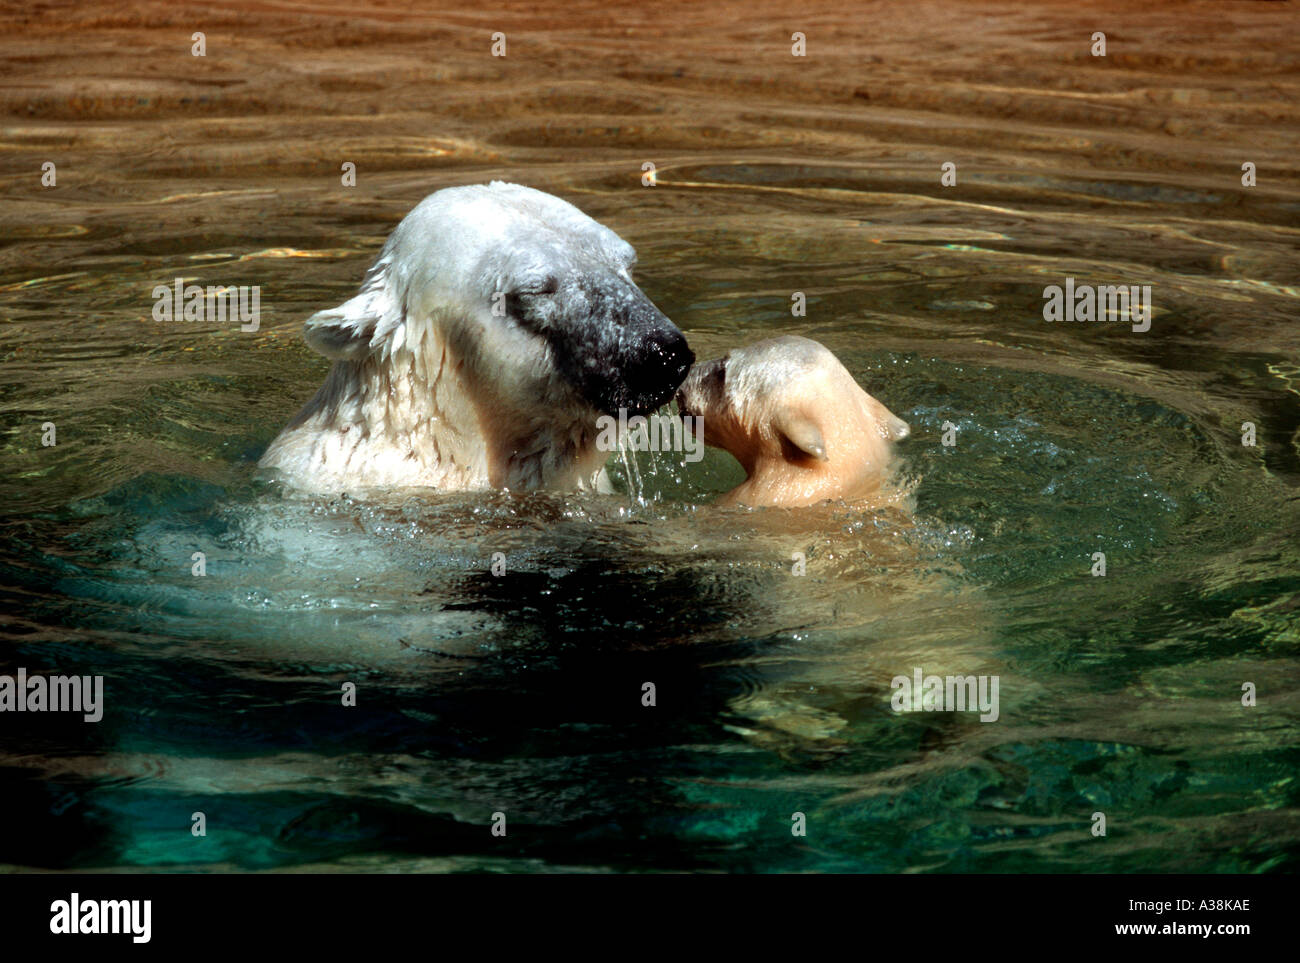 MBP-207 POLAR BEAR MOTHER AND CUB IN POOL - Stock Image